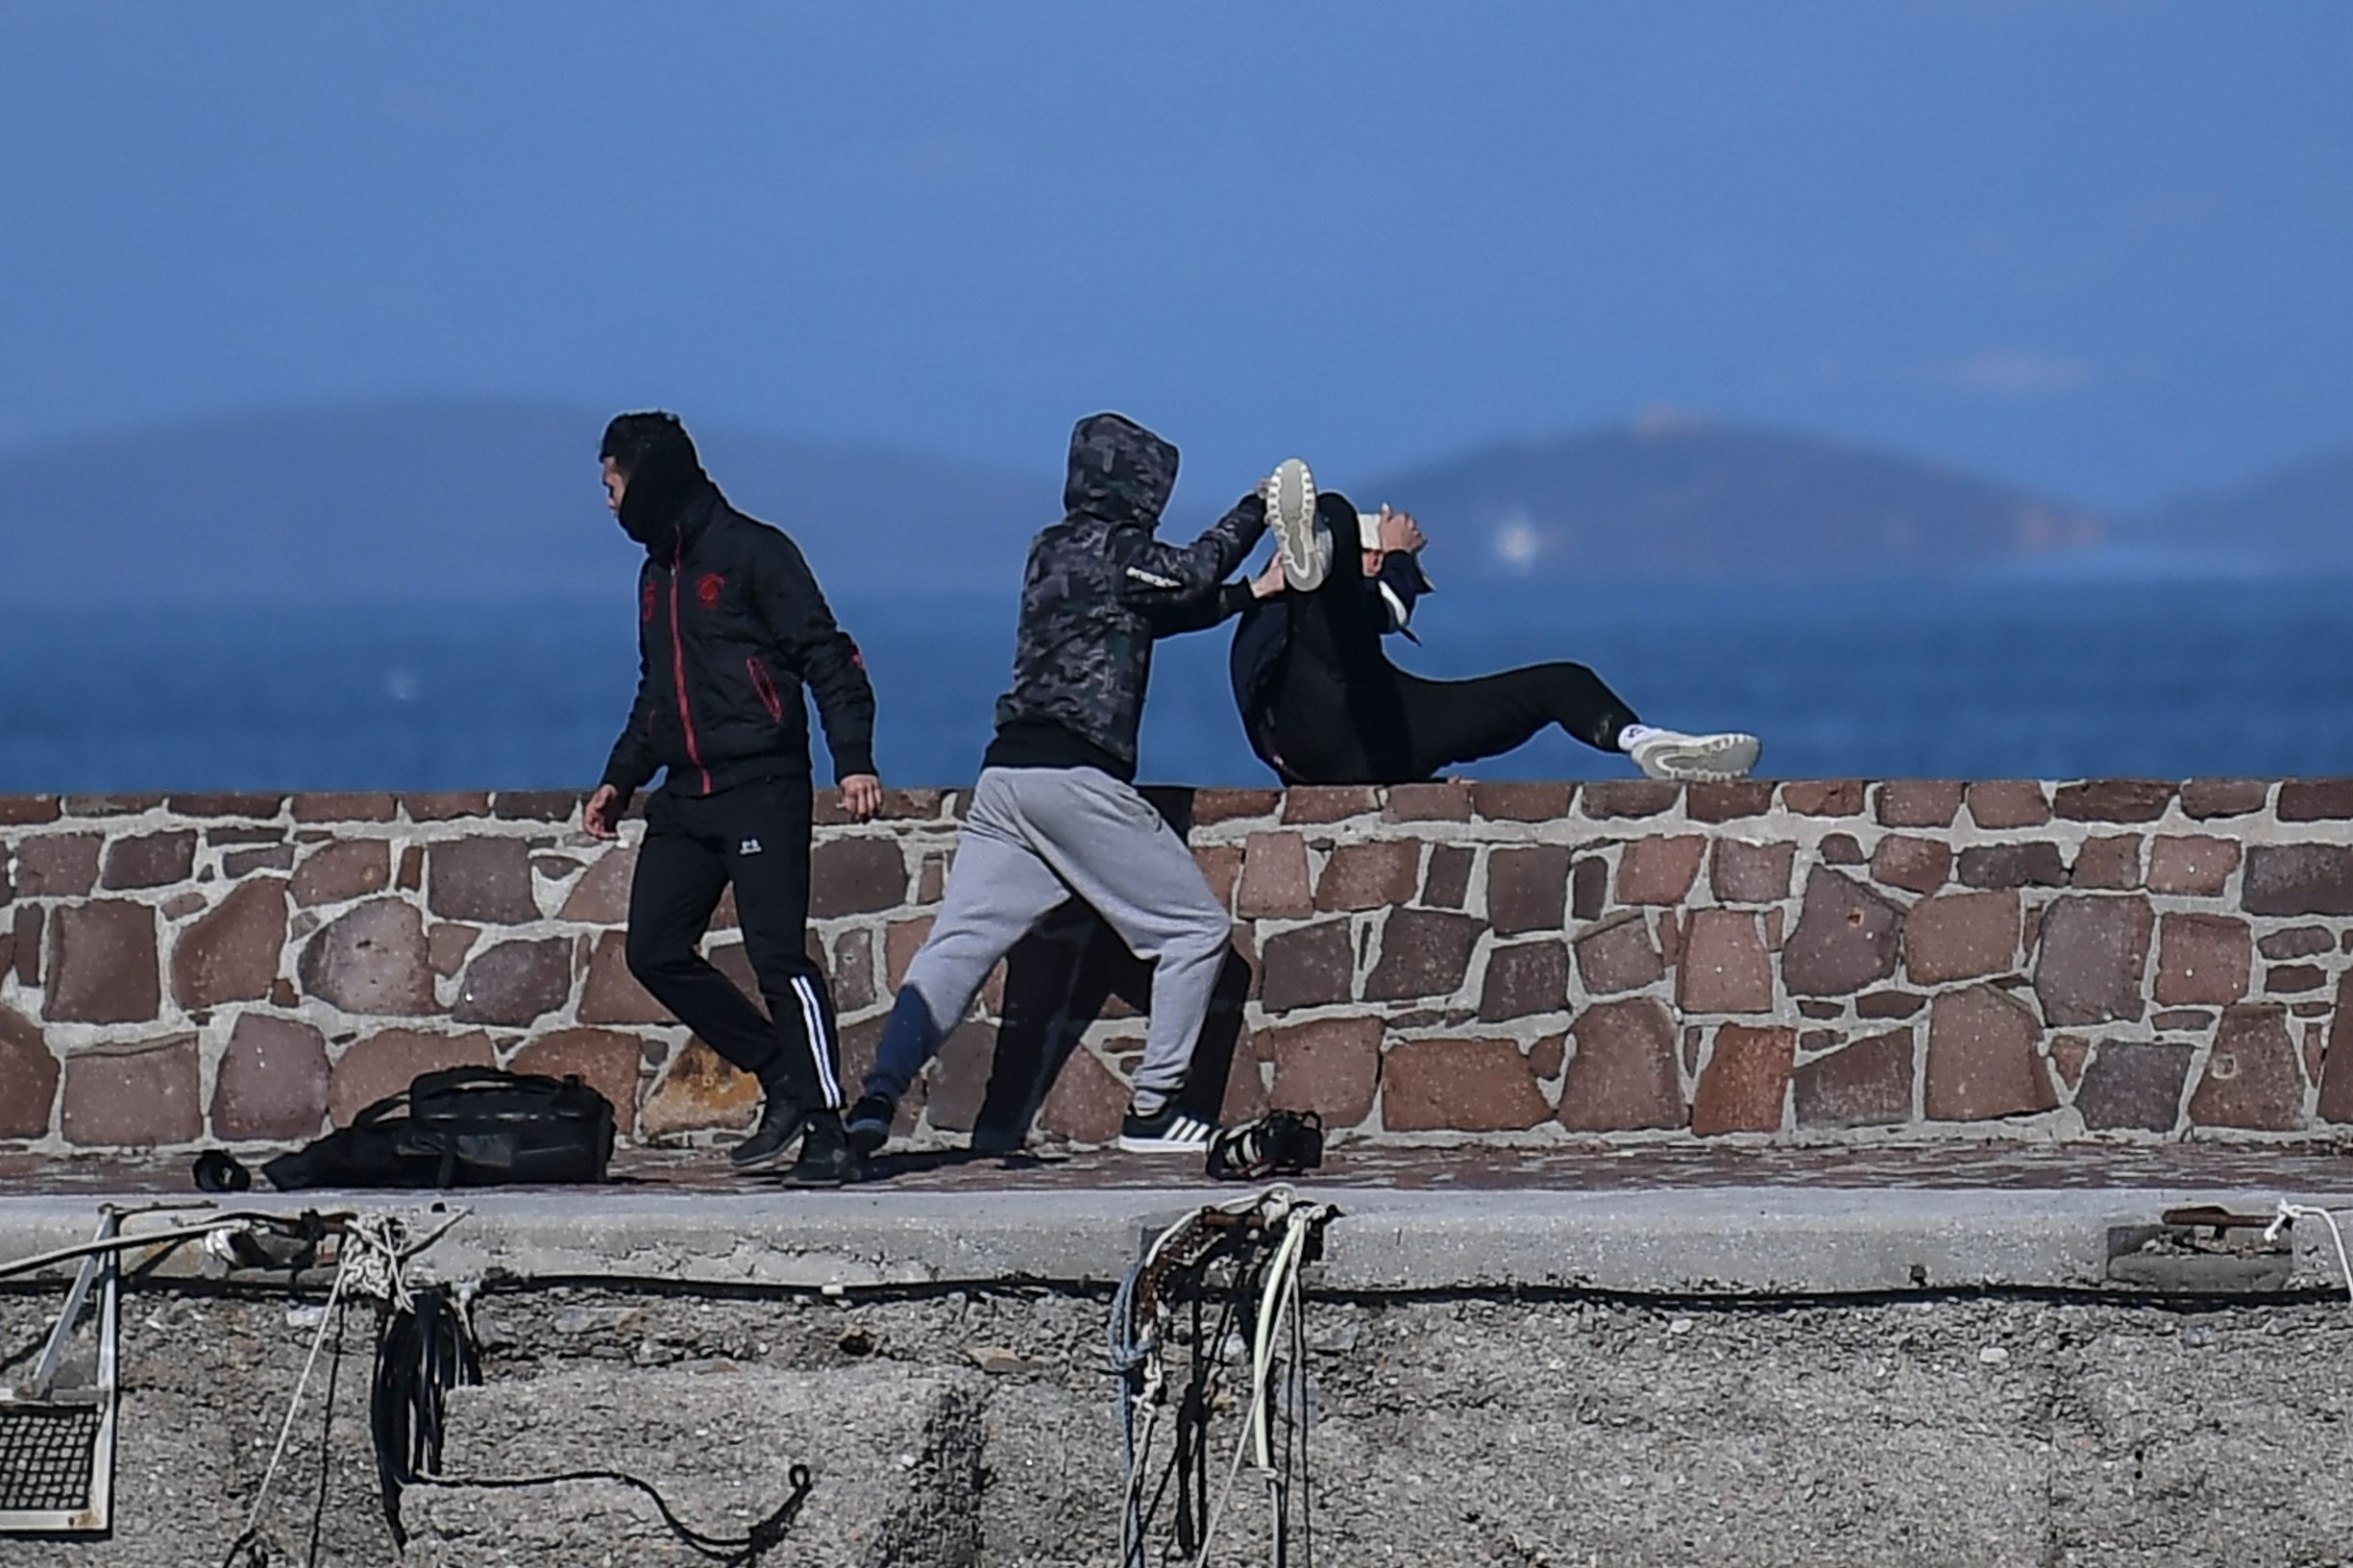 TOPSHOT - A journalist (R) is attacked by residents who are trying to prevent migrants from disembarking on the Greek island of Lesbos, on March 1, 2020. - The United Nation called on March 1 for calm and urged states to refrain from